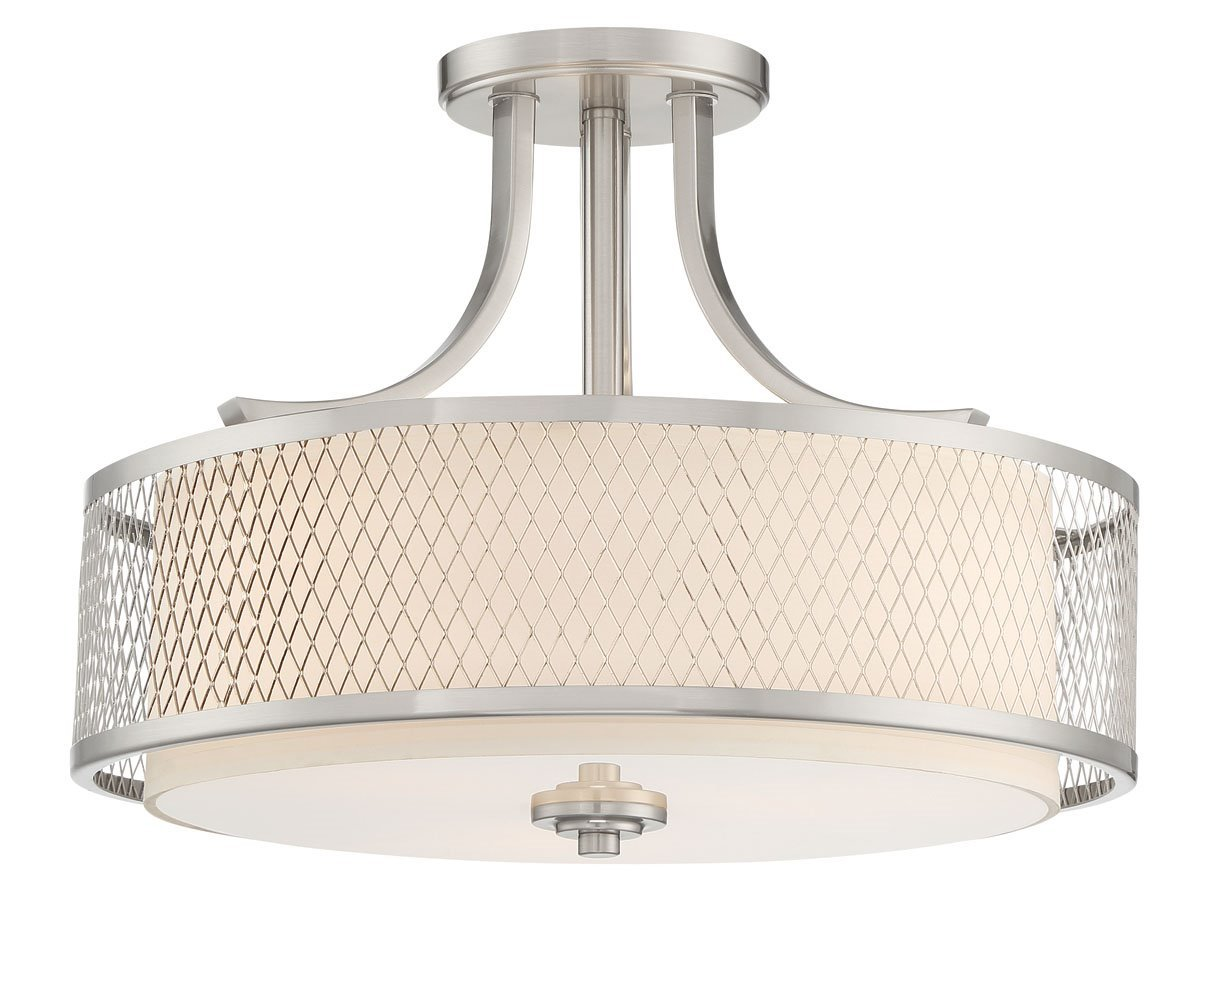 Kira Home Linx 16'' 3-Light Semi-Flush Mount Ceiling Light Fixture + Outer Mesh Shade and Inner White Fabric Shade, Brushed Nickel Finish